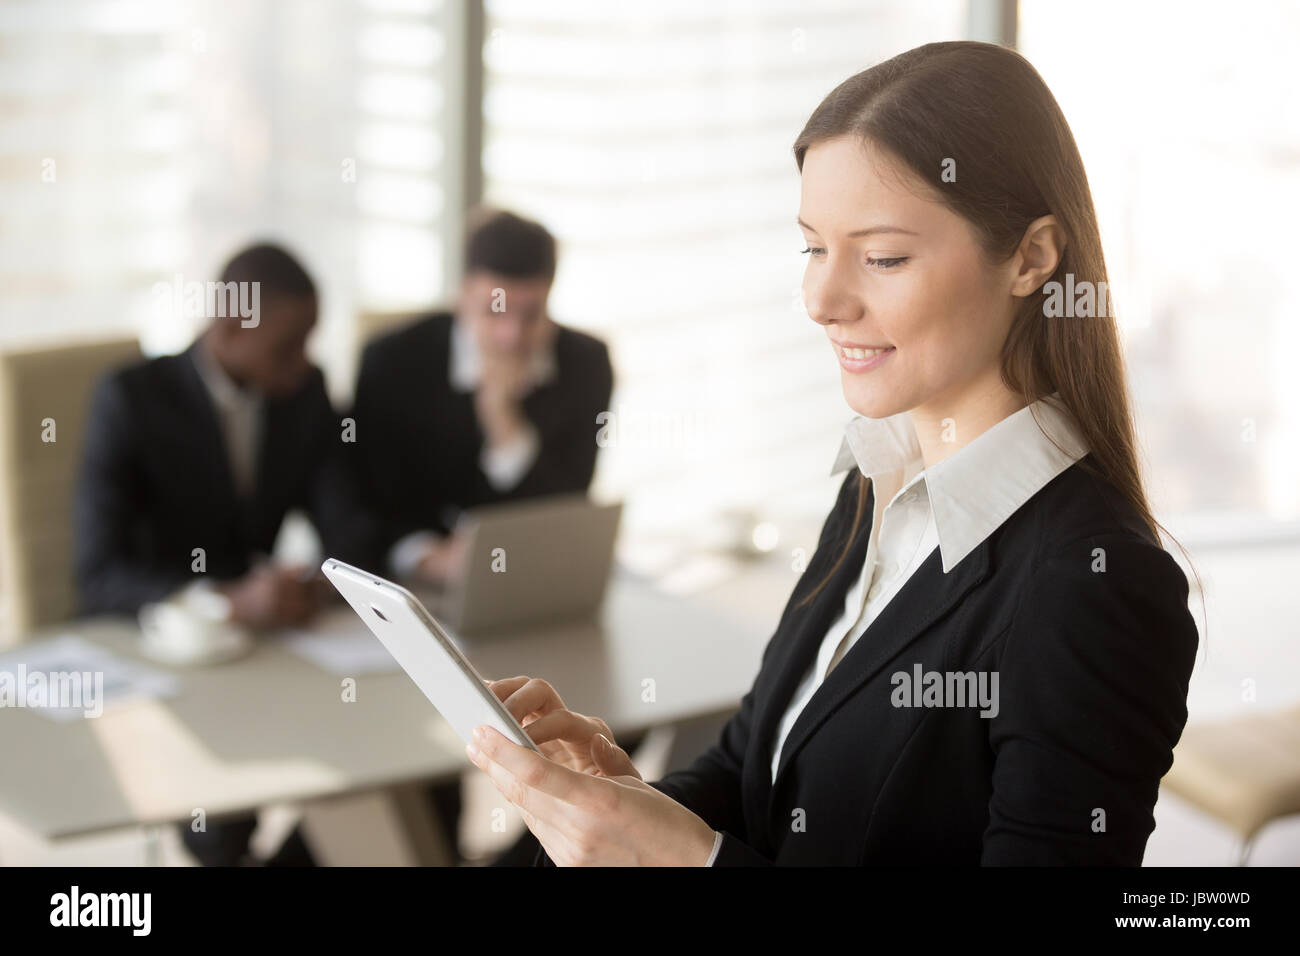 Young attractive businesswoman holding tablet, looking at screen, standing in office with colleagues at background, - Stock Image